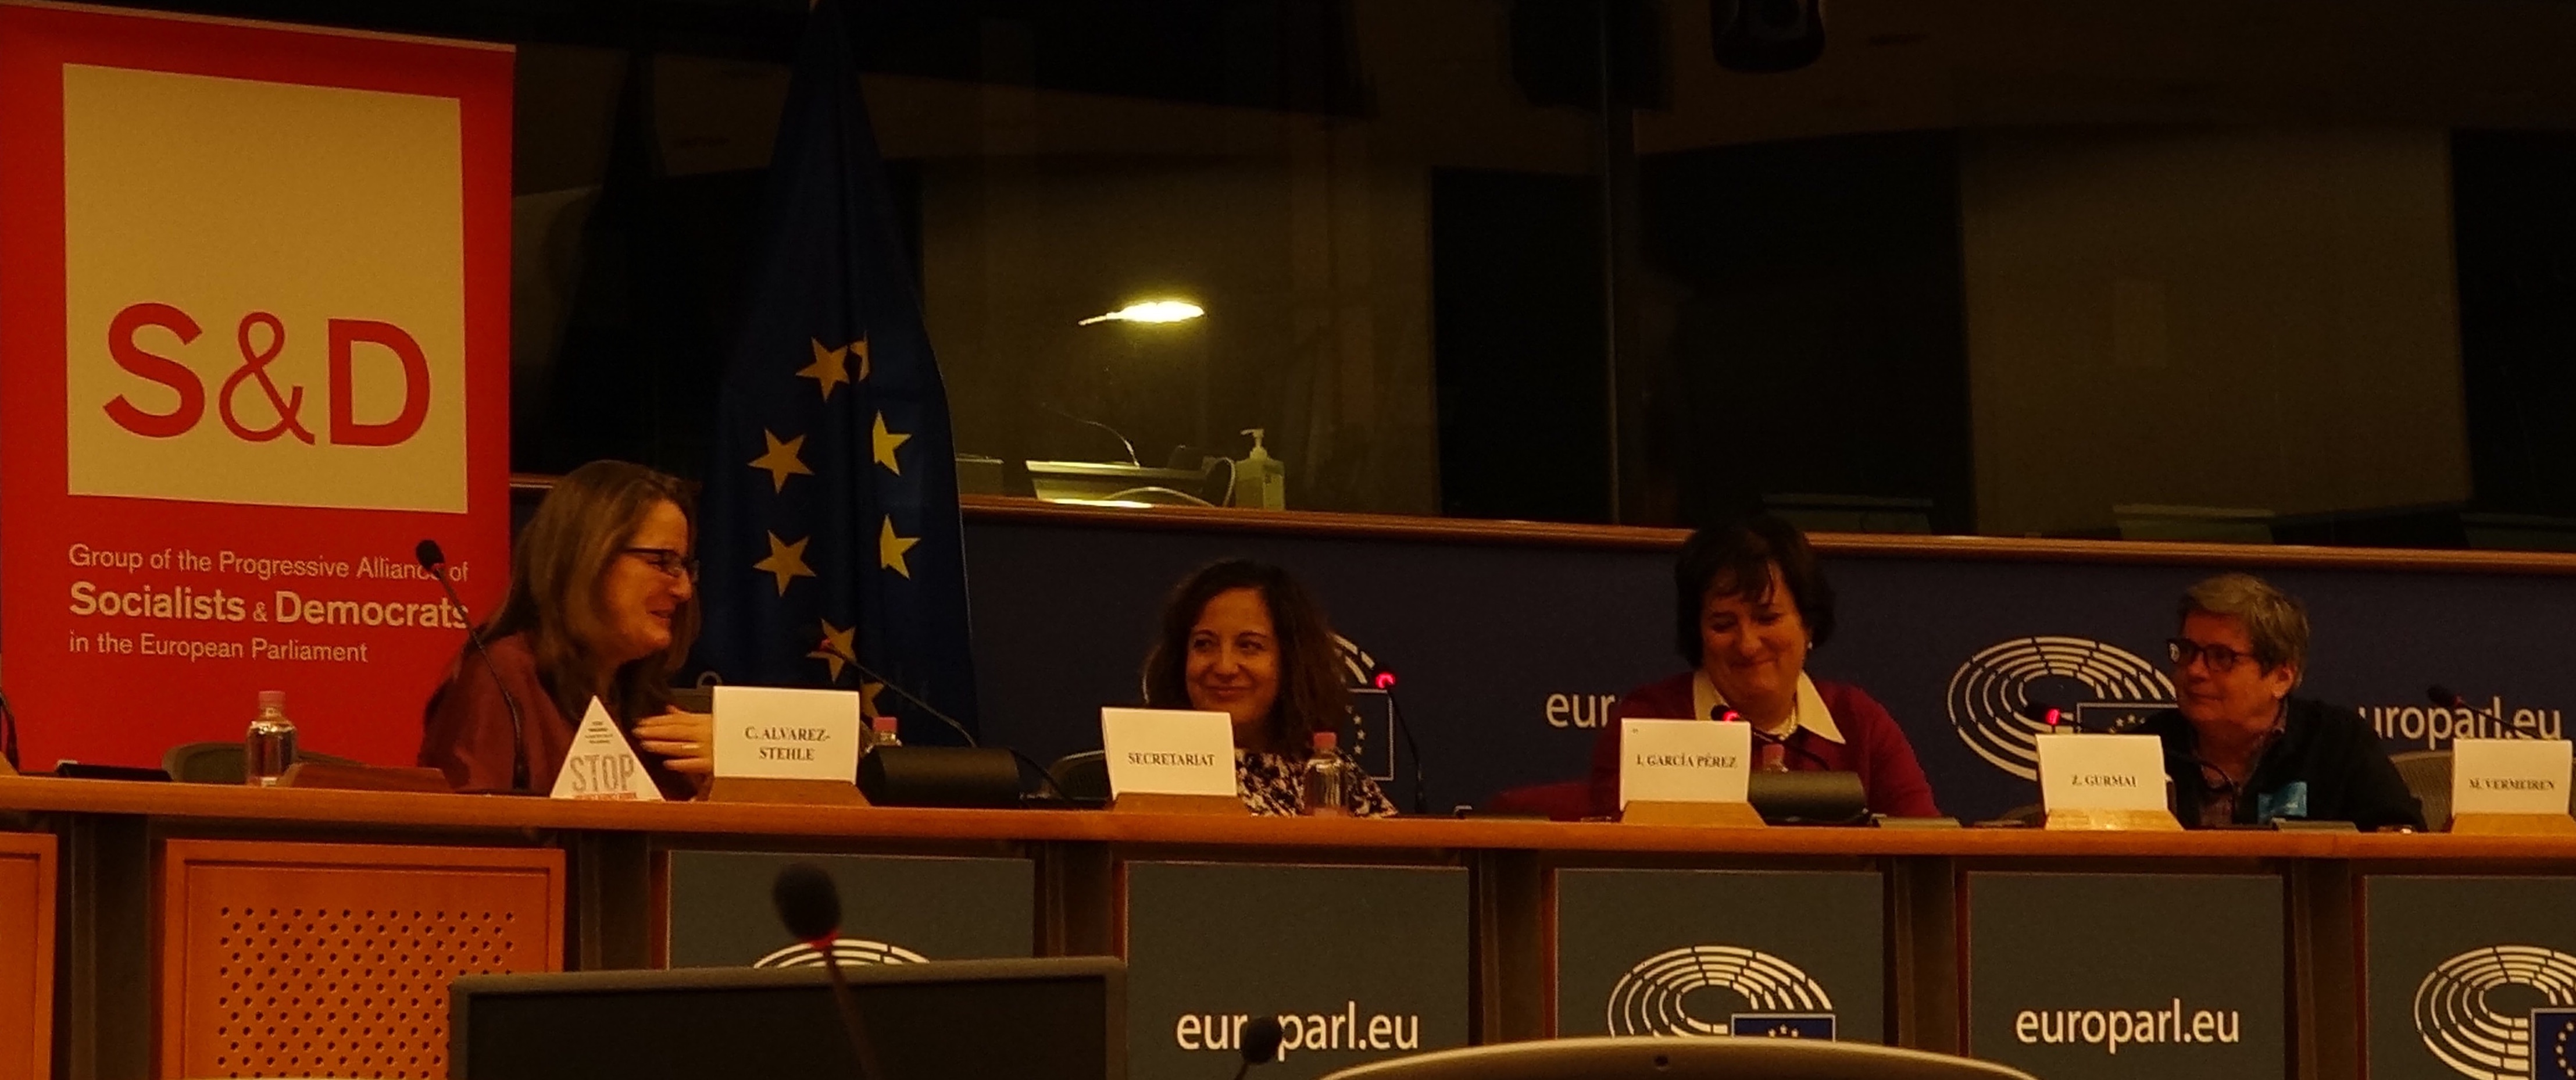 Chelo on panel European Parliament